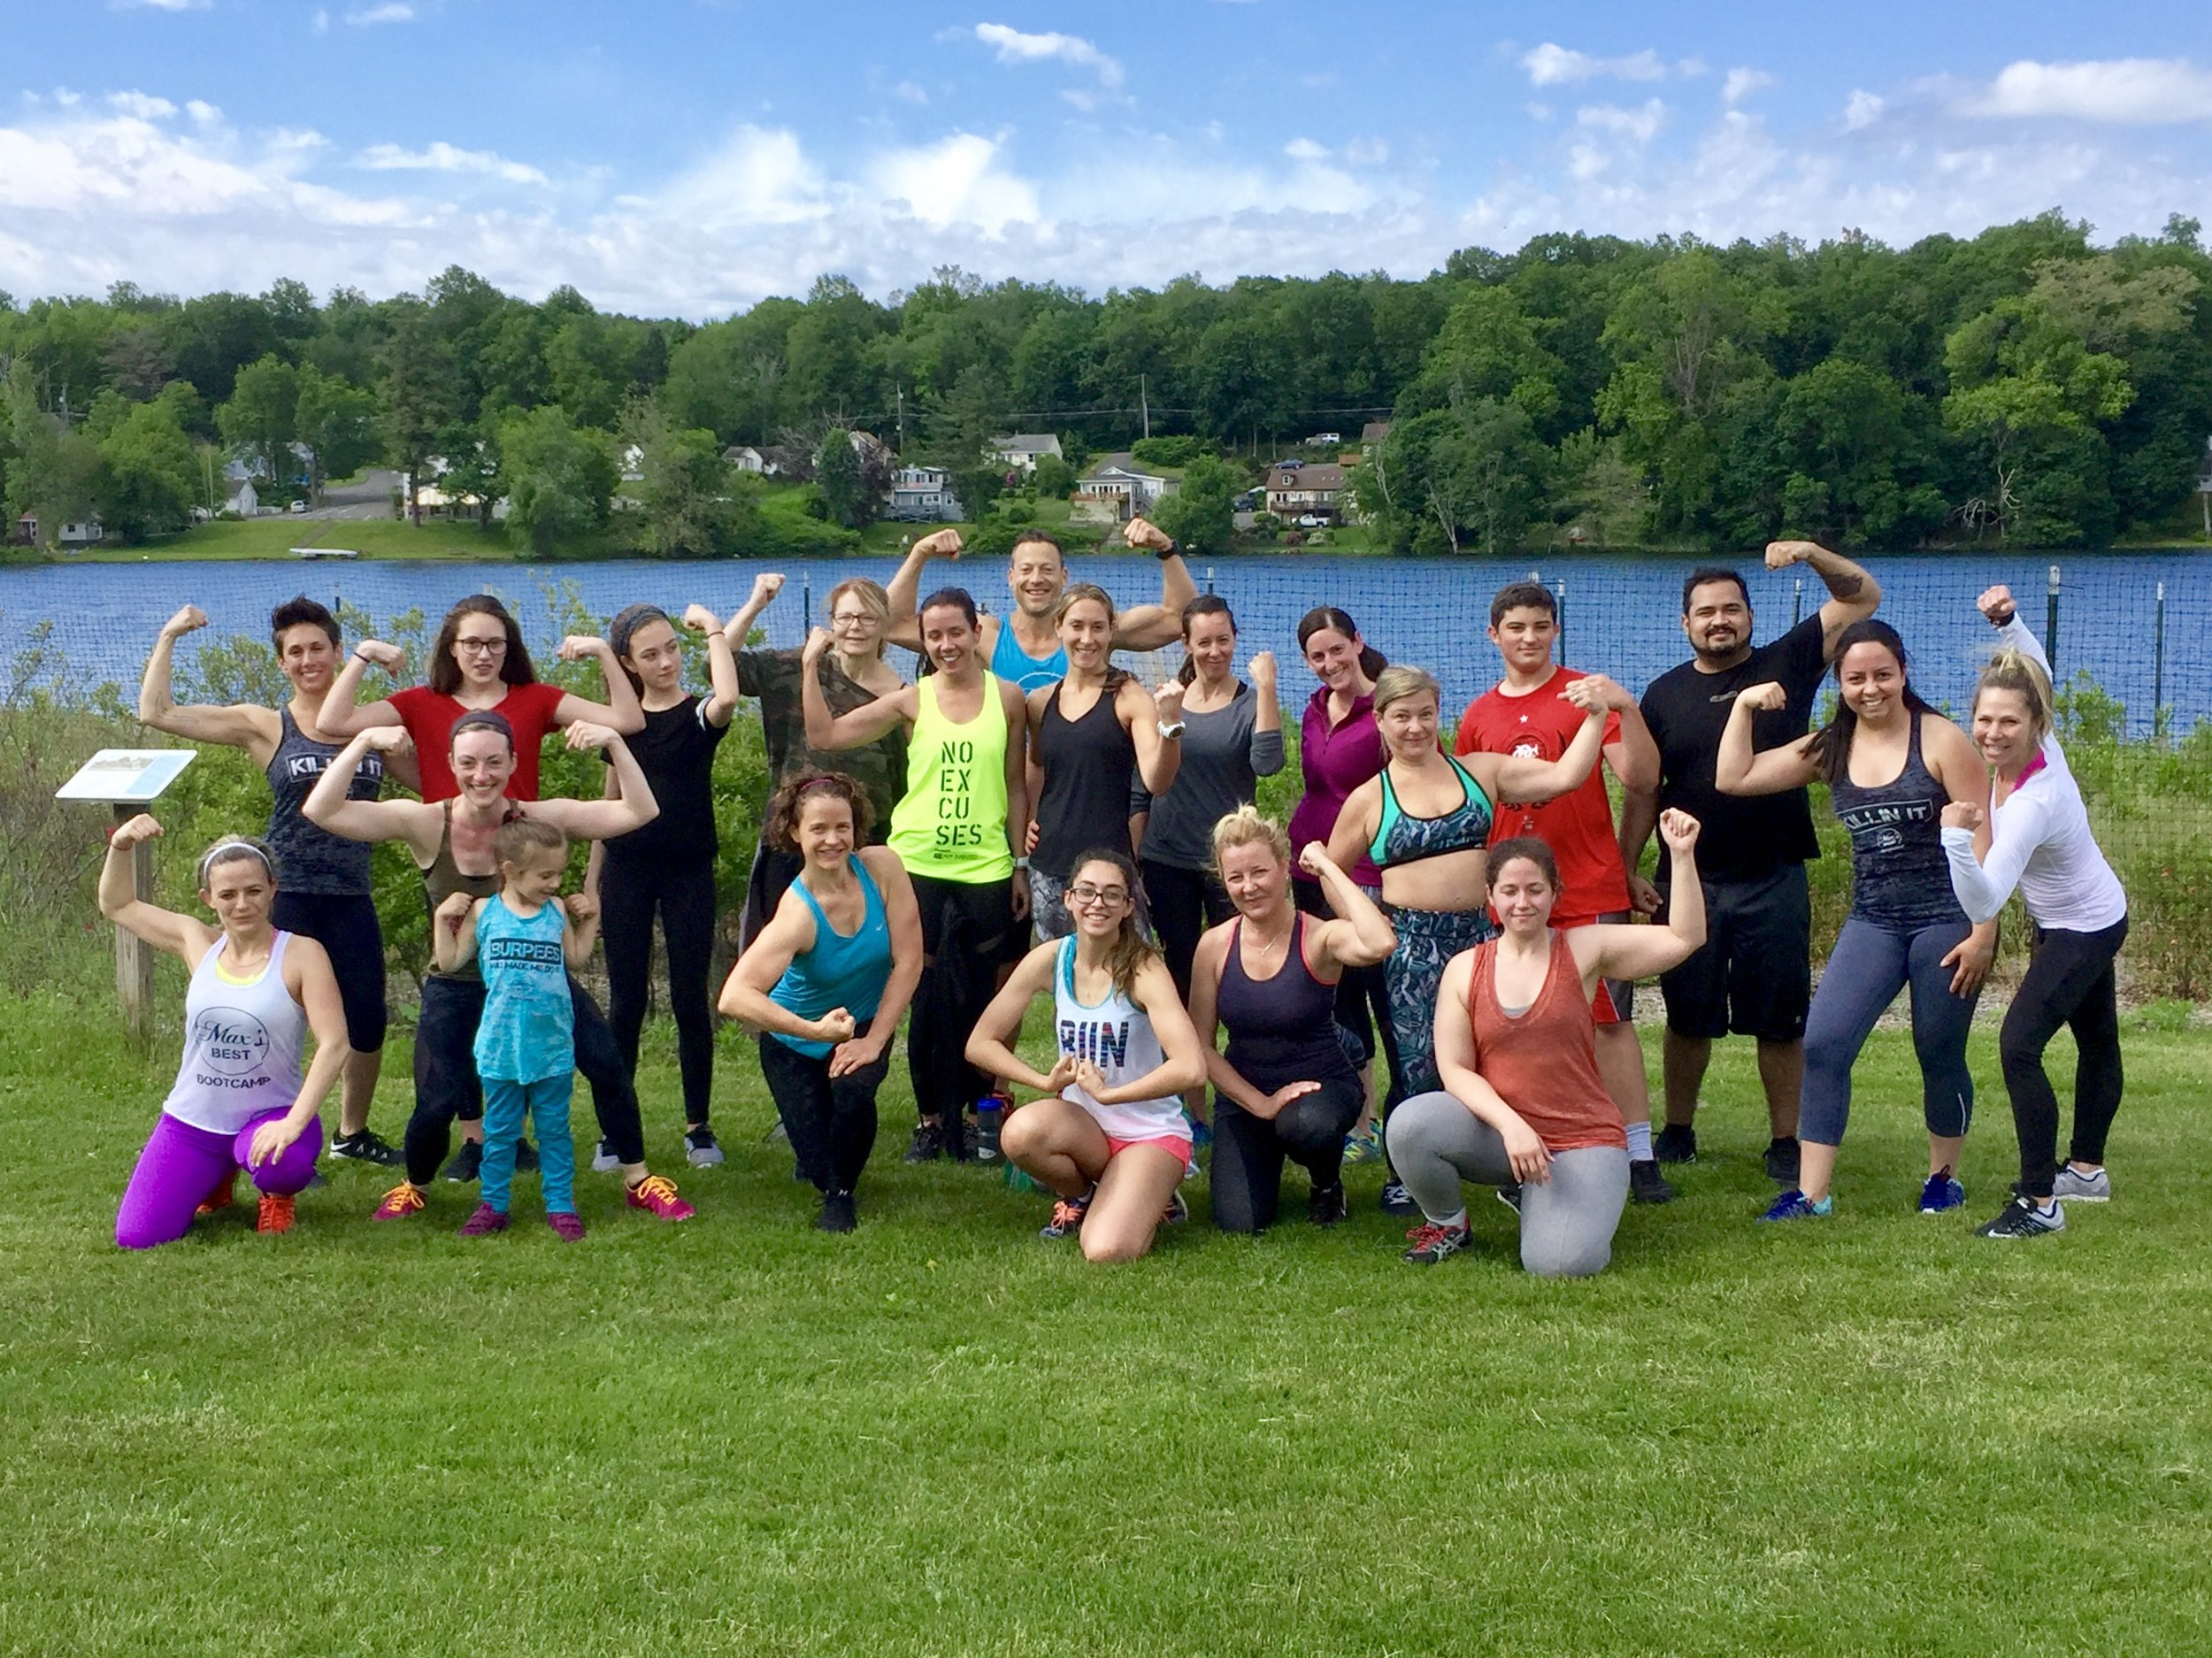 Lululemon bootcamp workout team flex photo